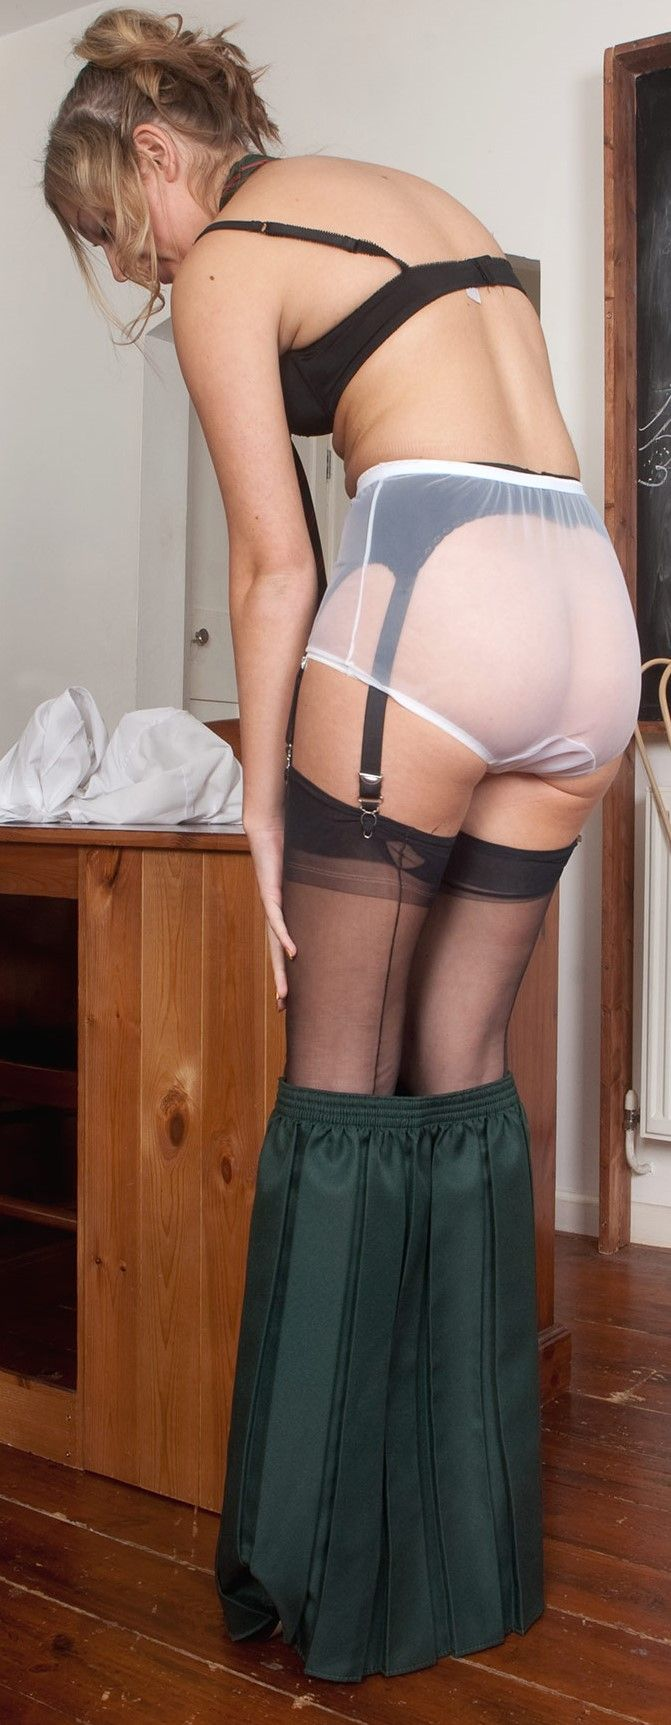 Over and stockings bent girls panties